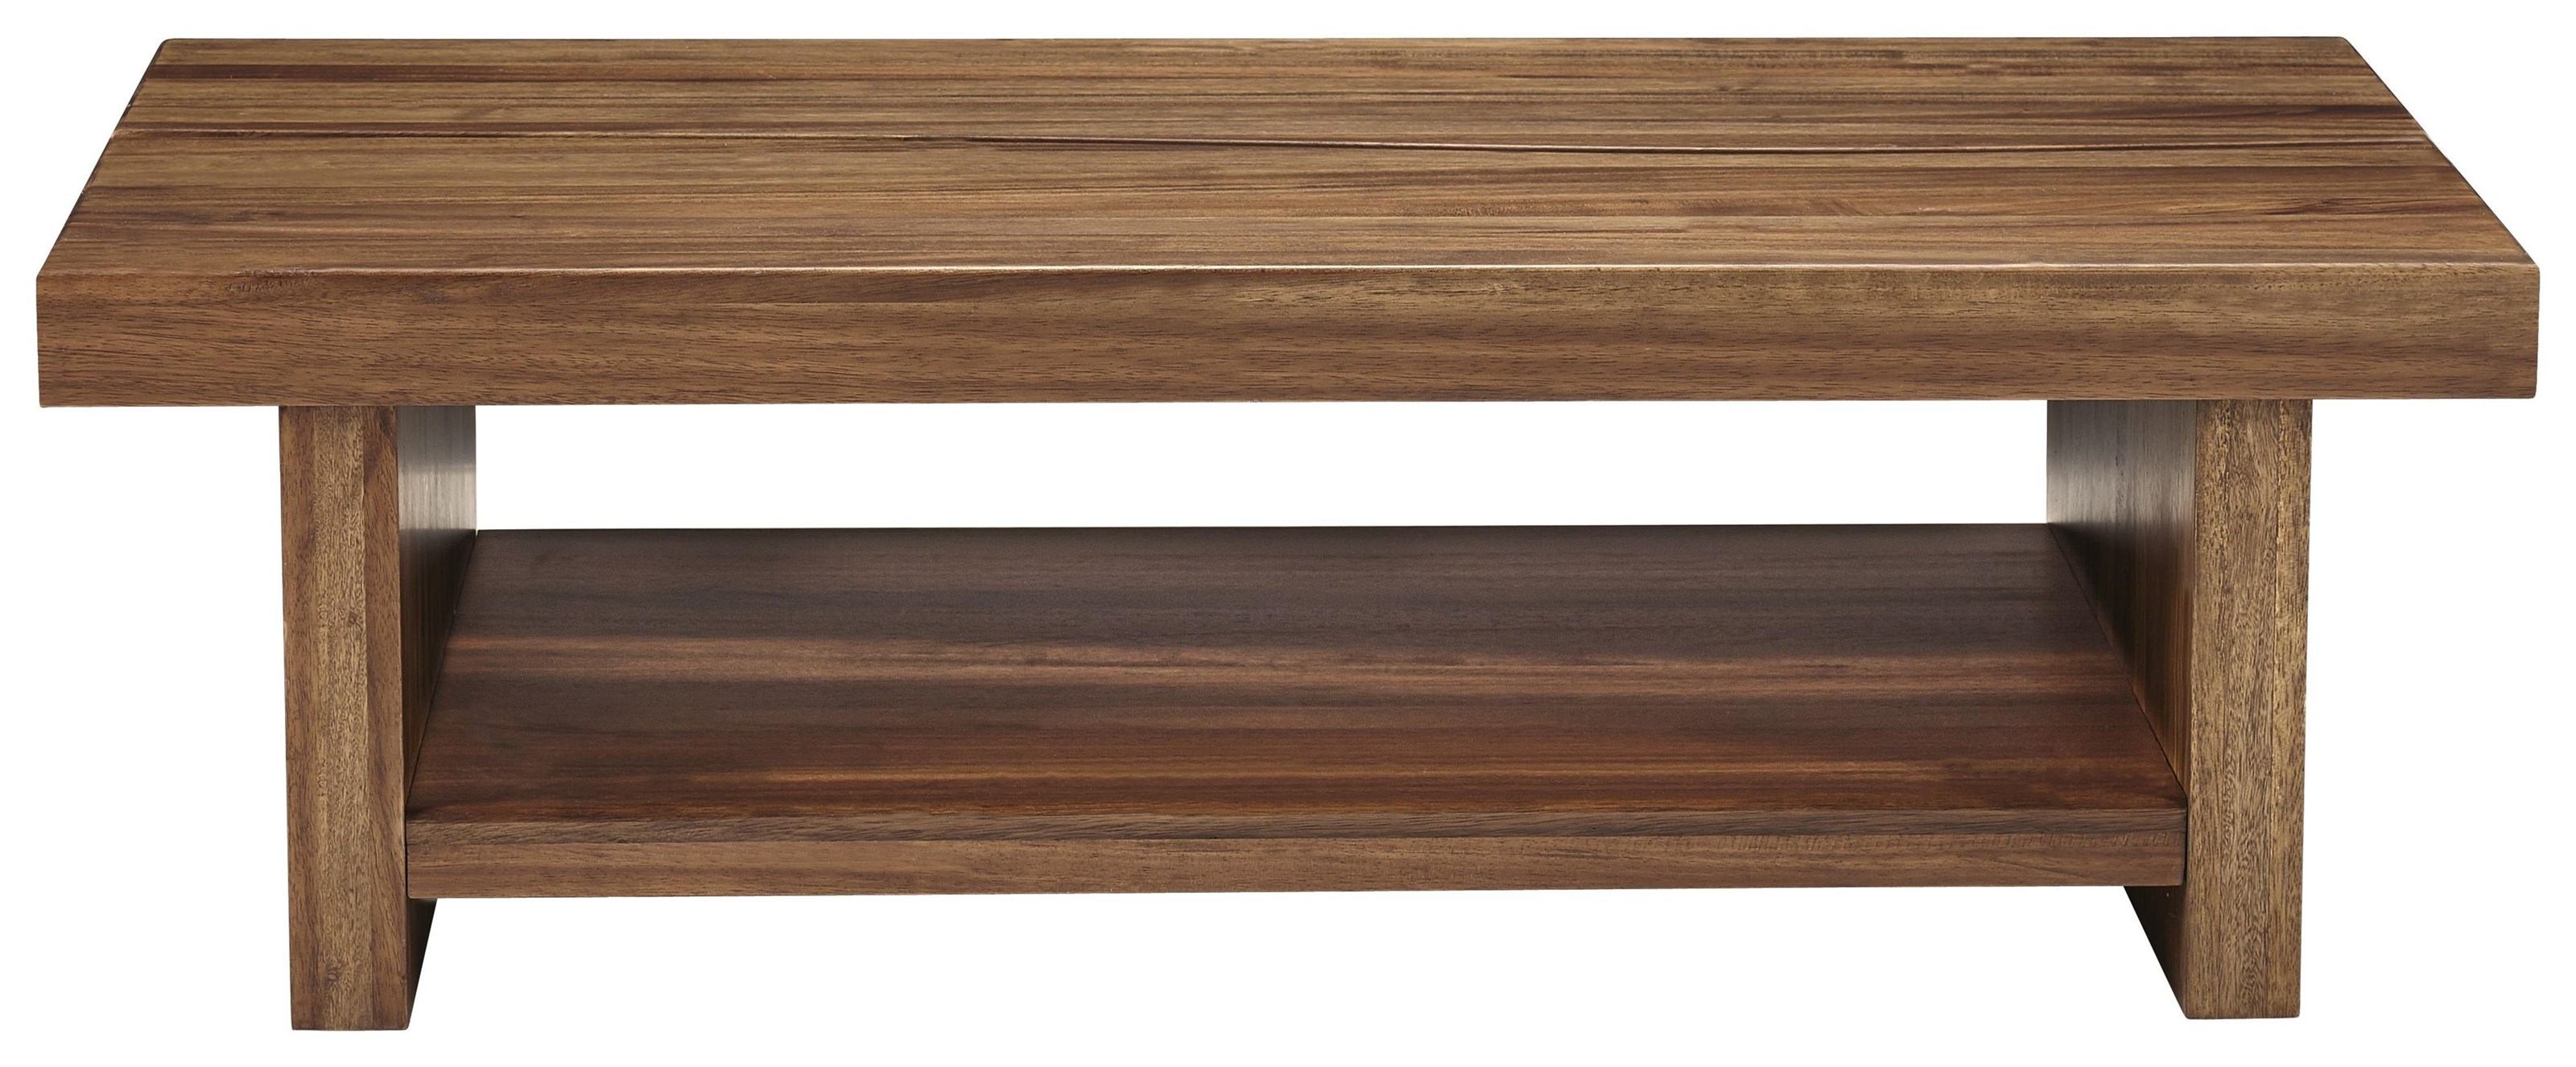 Ocean Coffee Table by Modus International at Red Knot